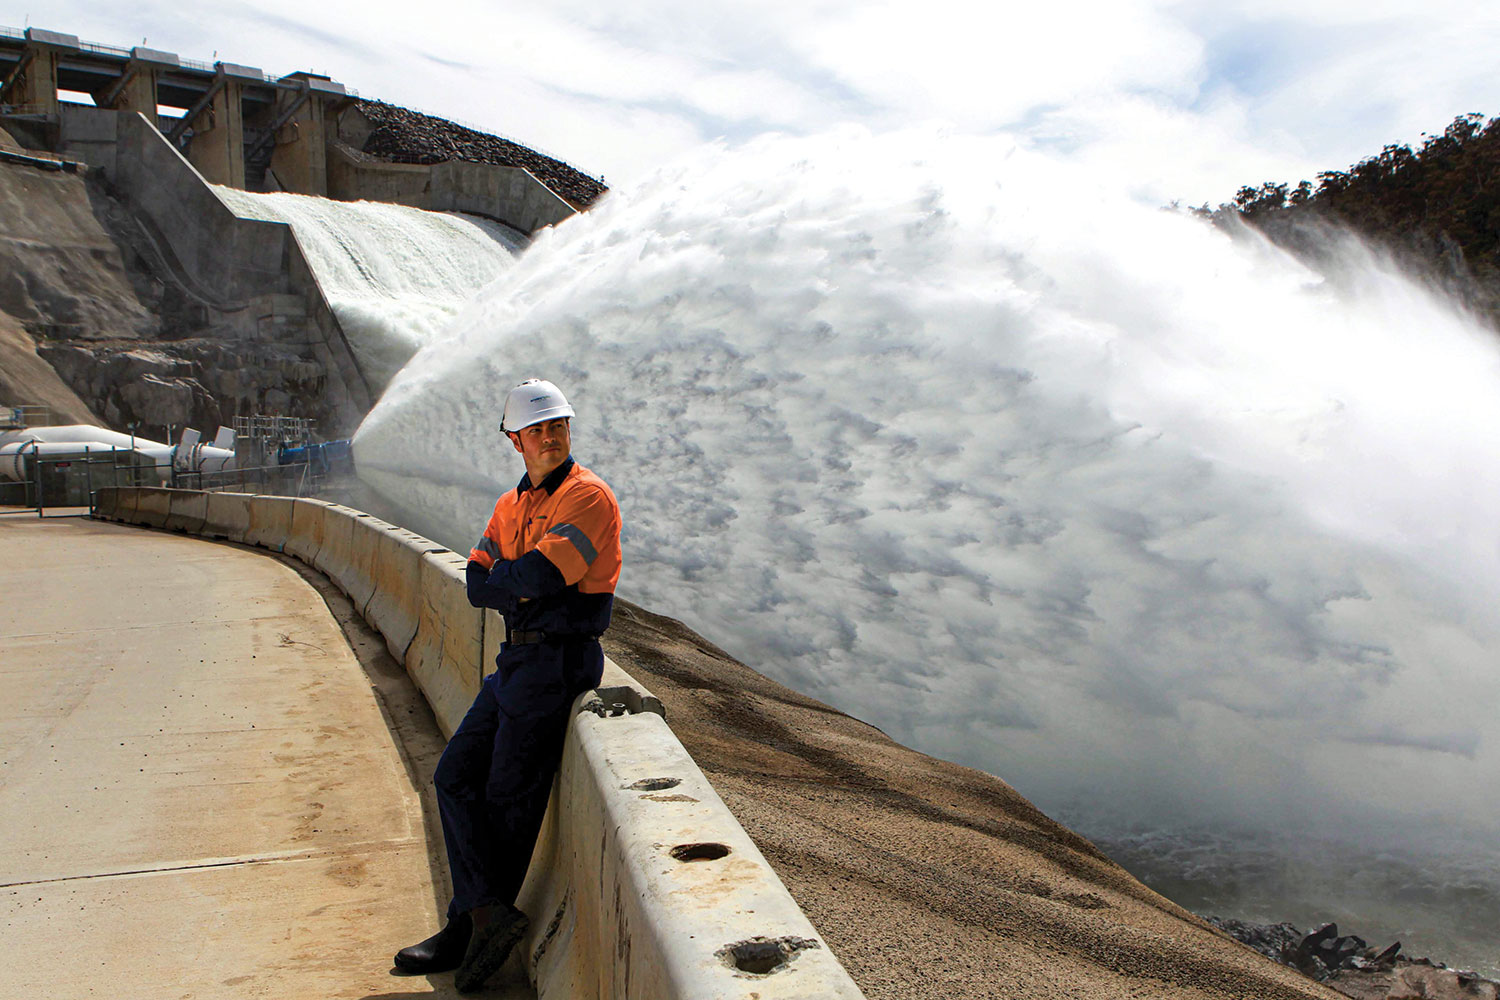 Project Director Kieran Cusack looks on as some of the scheme's 84,000 ML of water surges past. (Image: Newspix/Sam Mooy)